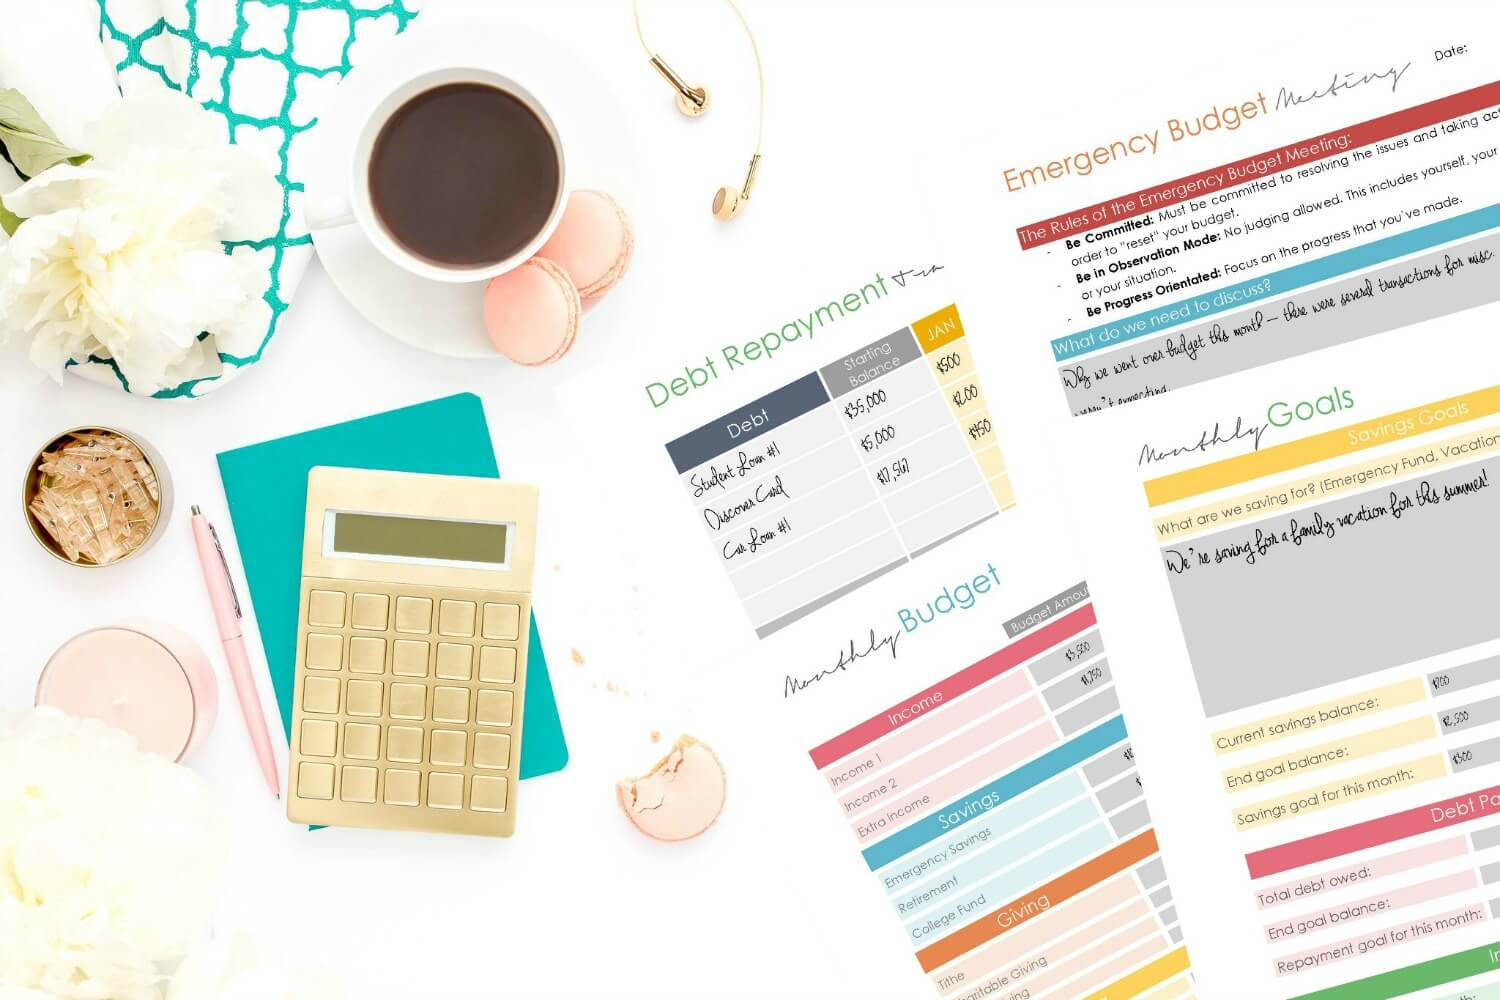 Looking for a budget planner for your real life? This printable budget planner is designed to fit your life - organize it however you see fit!